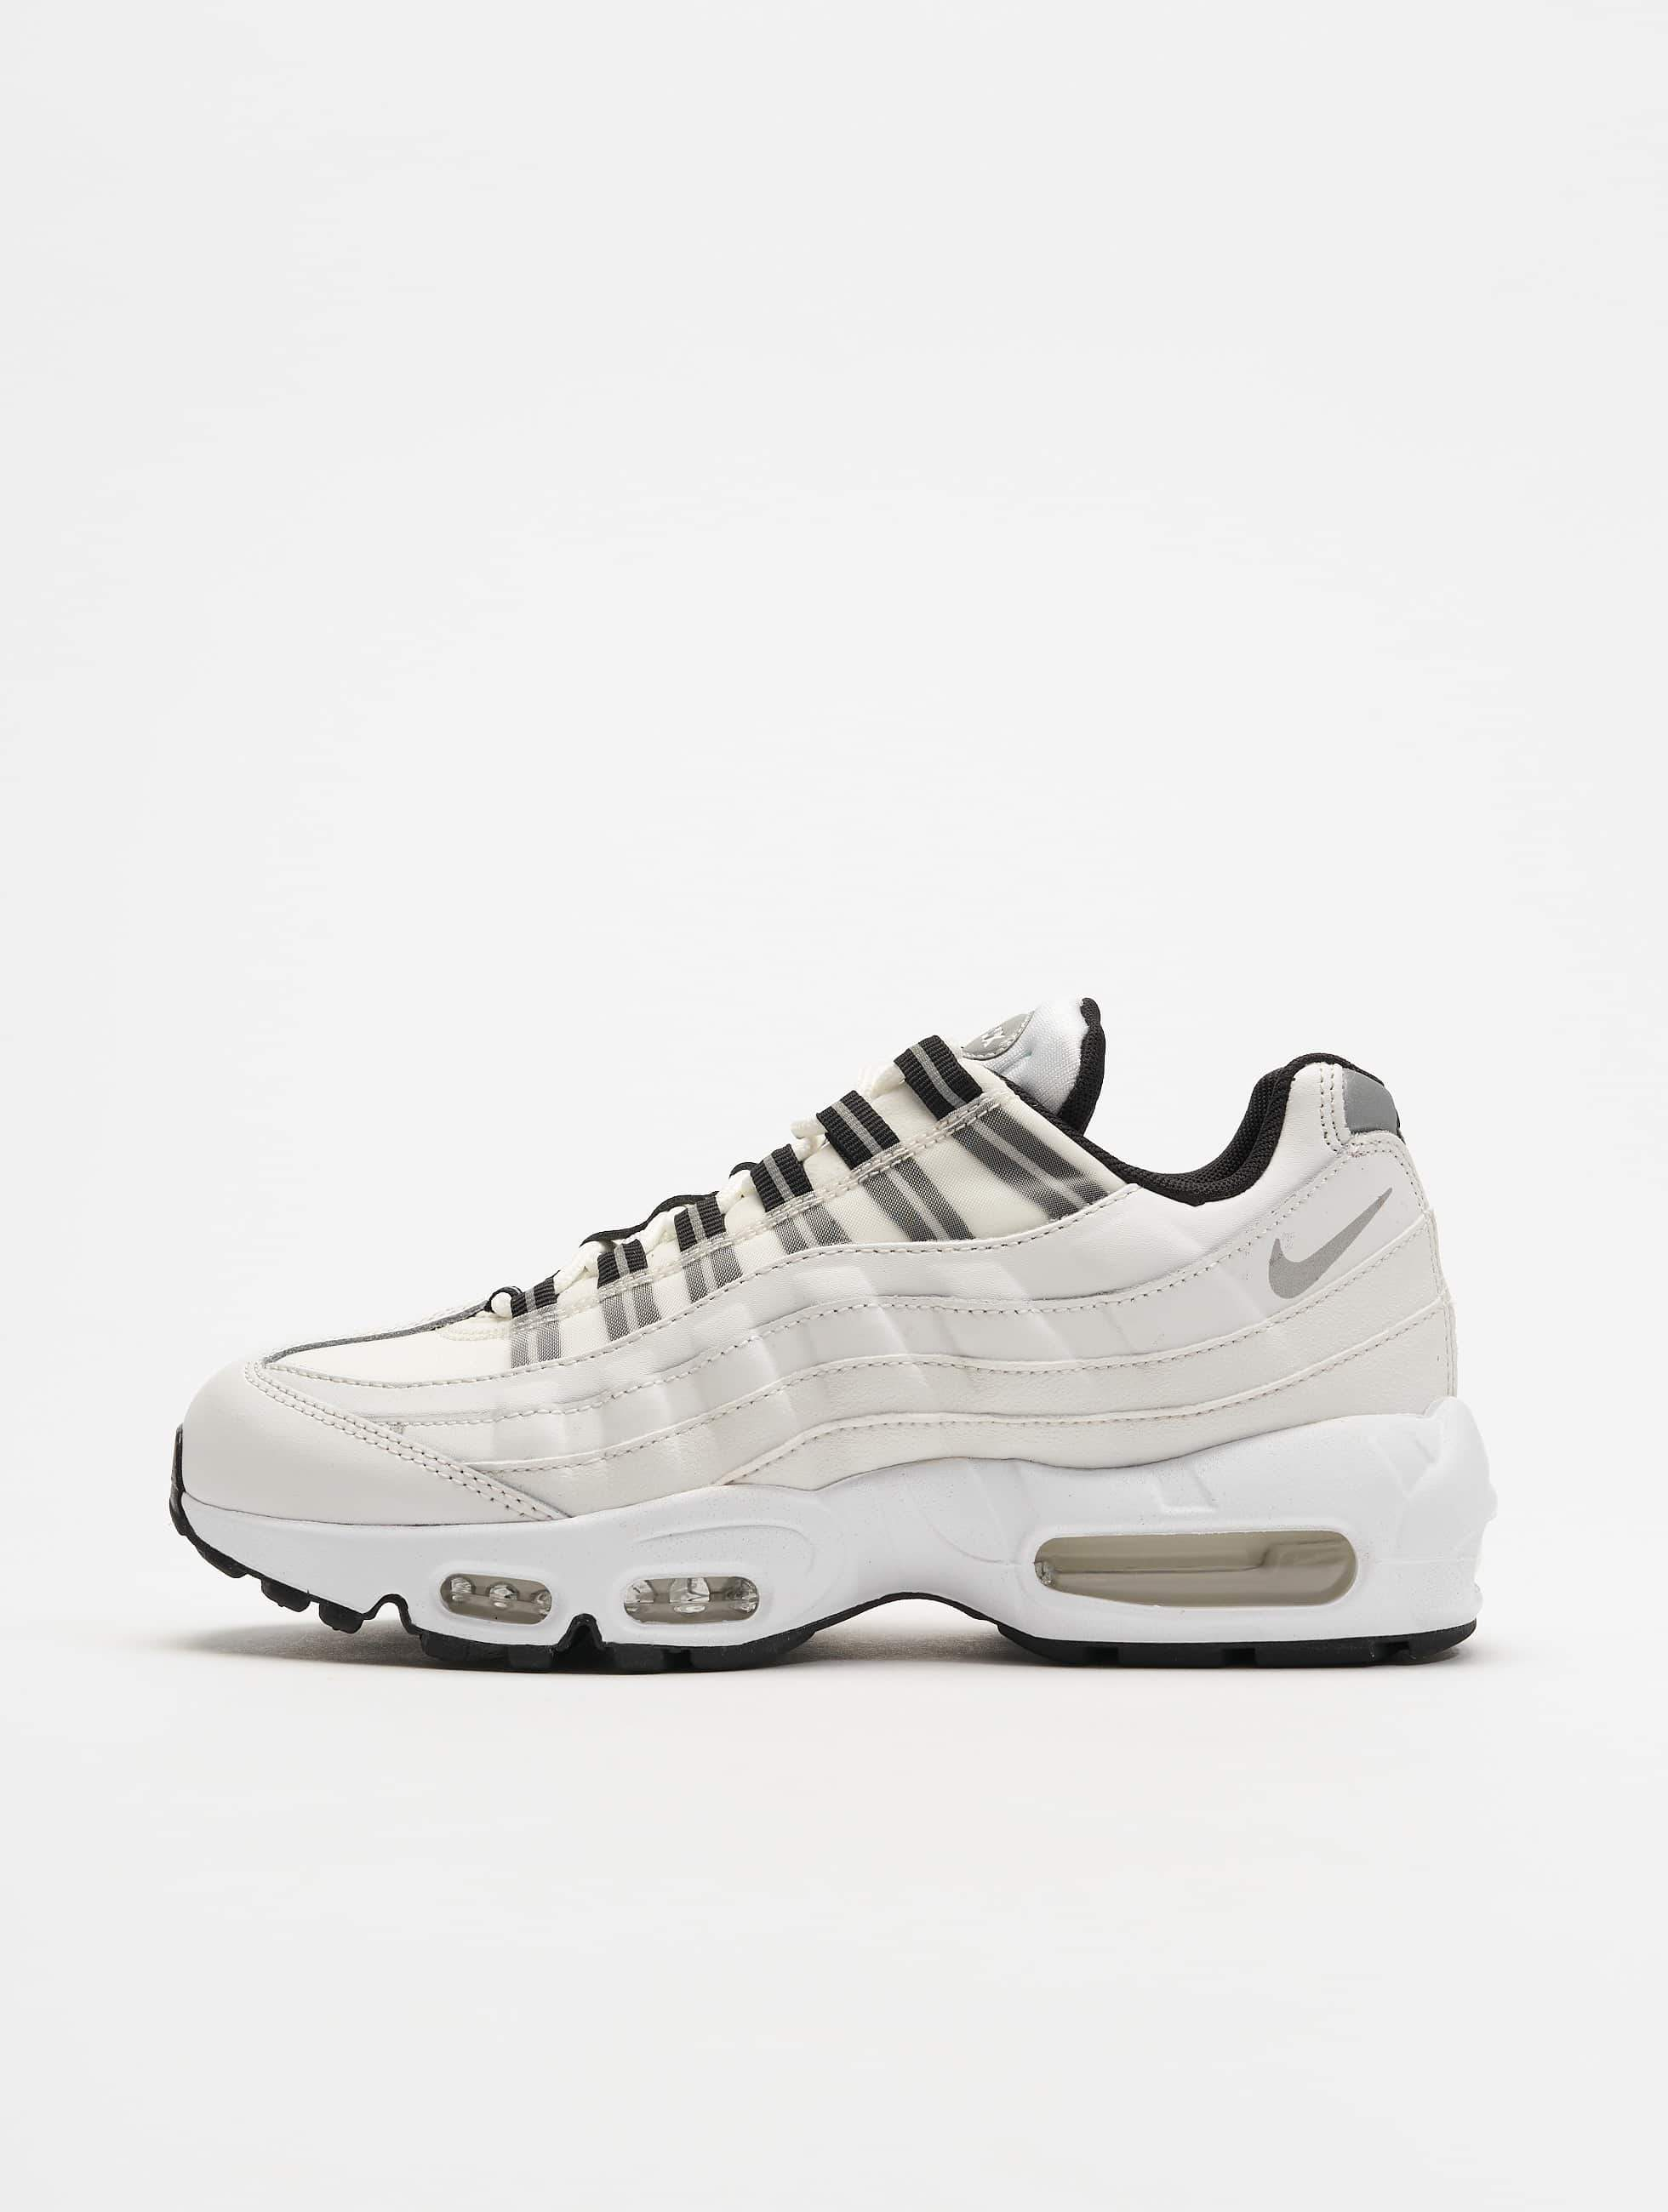 Sneaker Weiß Nike Air Max 95 Sneakers Summit White Reflect Silvern Summit White